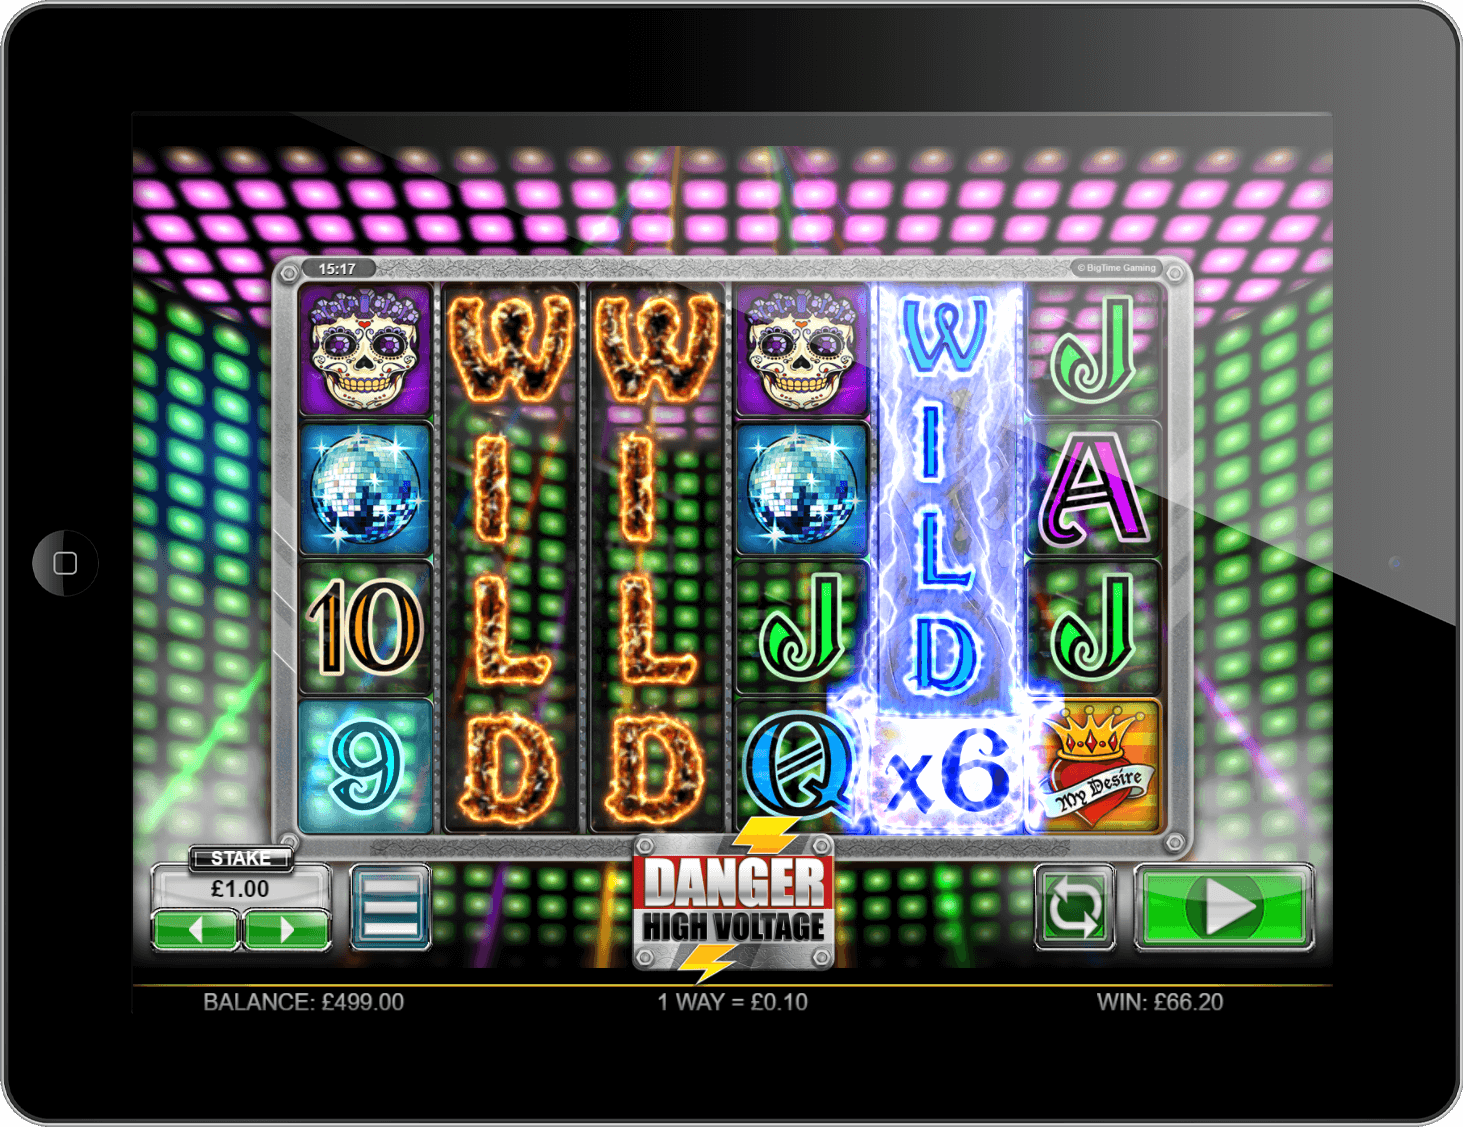 Experience the award-winning Danger! High Voltage slot on tablet at PlayOJO